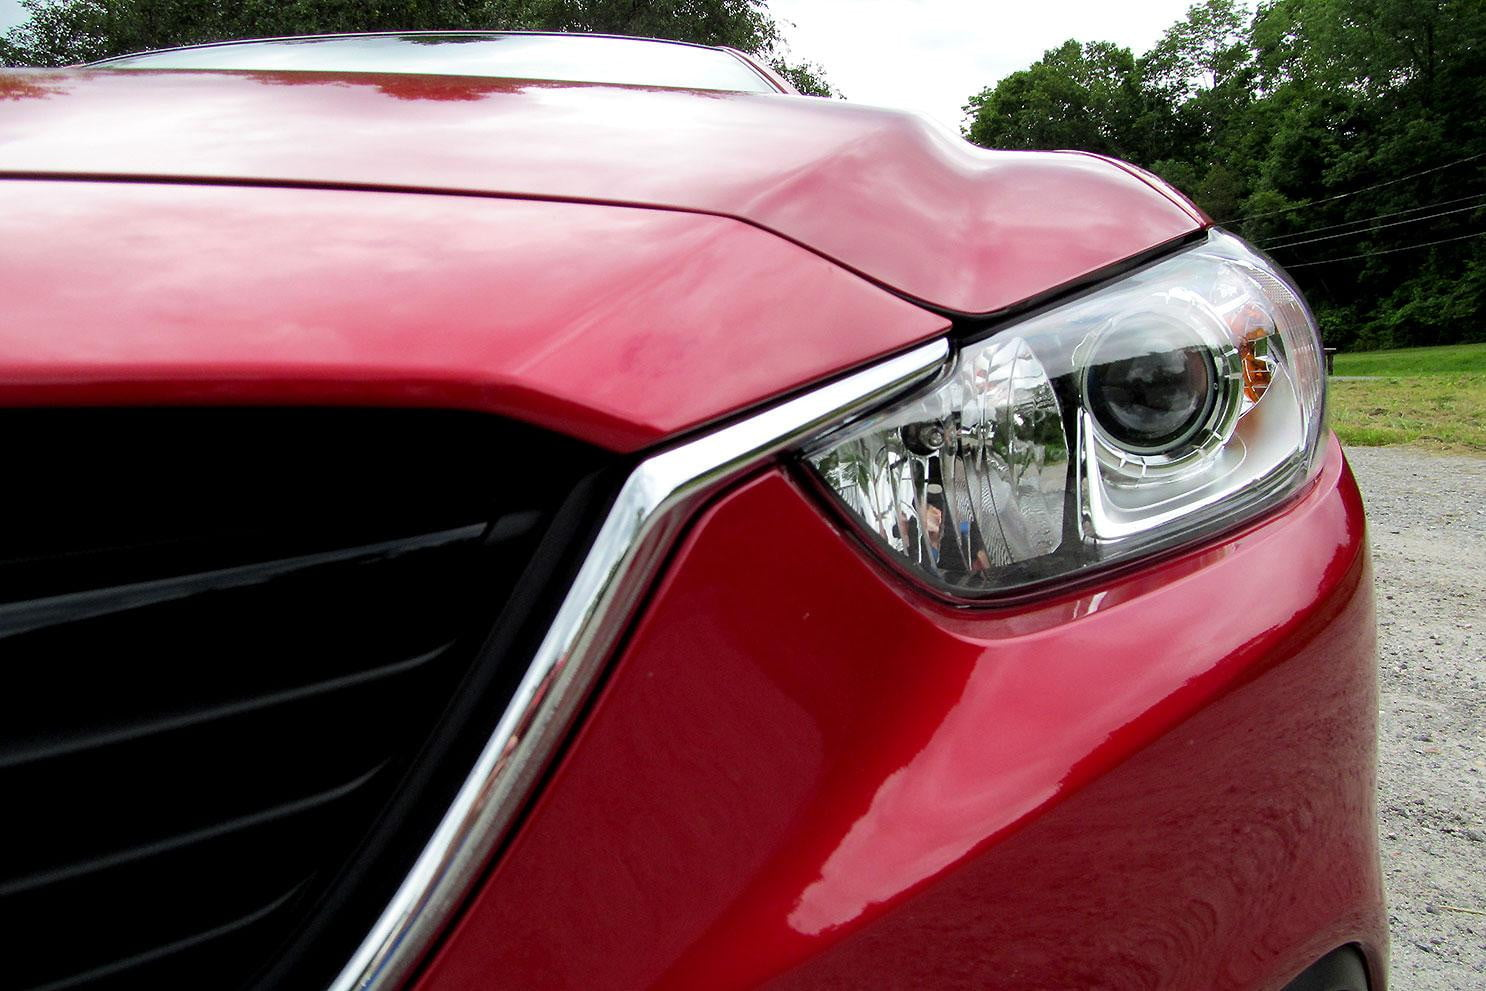 ... Particular Care Regarding Mpg, So It Seems Mazda6 Buyers Can Expect  Good Fuel Economy In Real World Driving, And Even Better Results If They  Actually ...